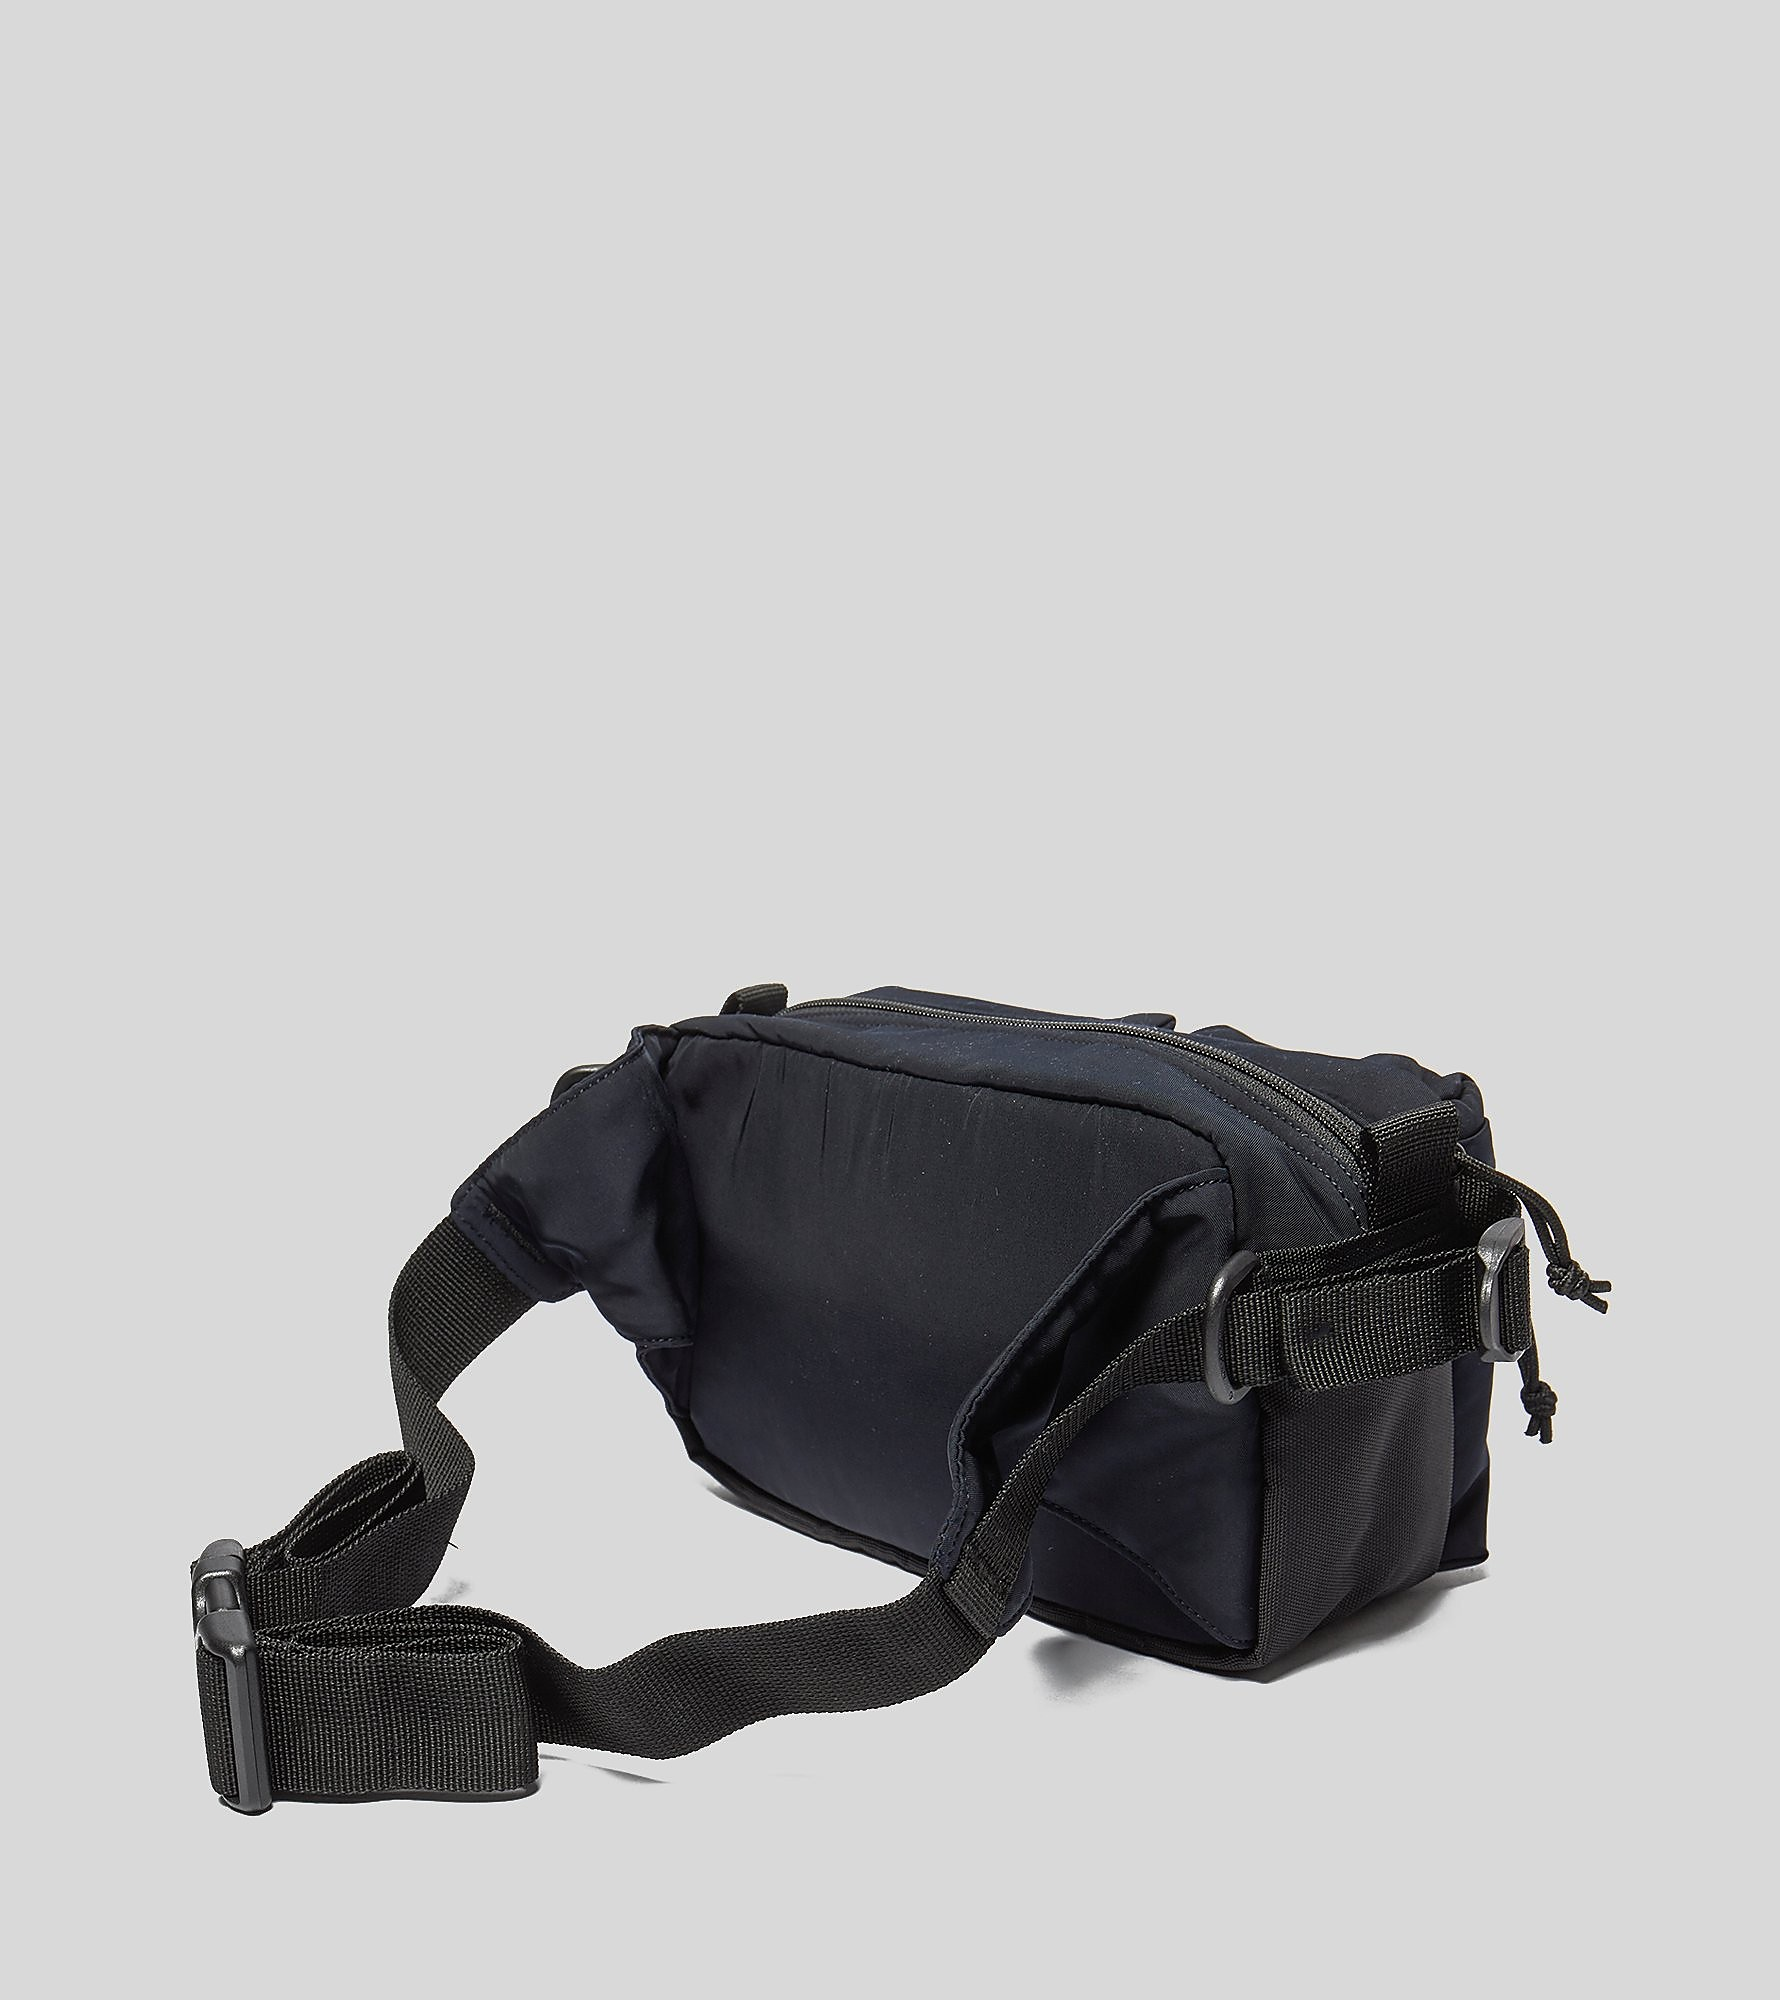 Carhartt WIP Military Side Bag